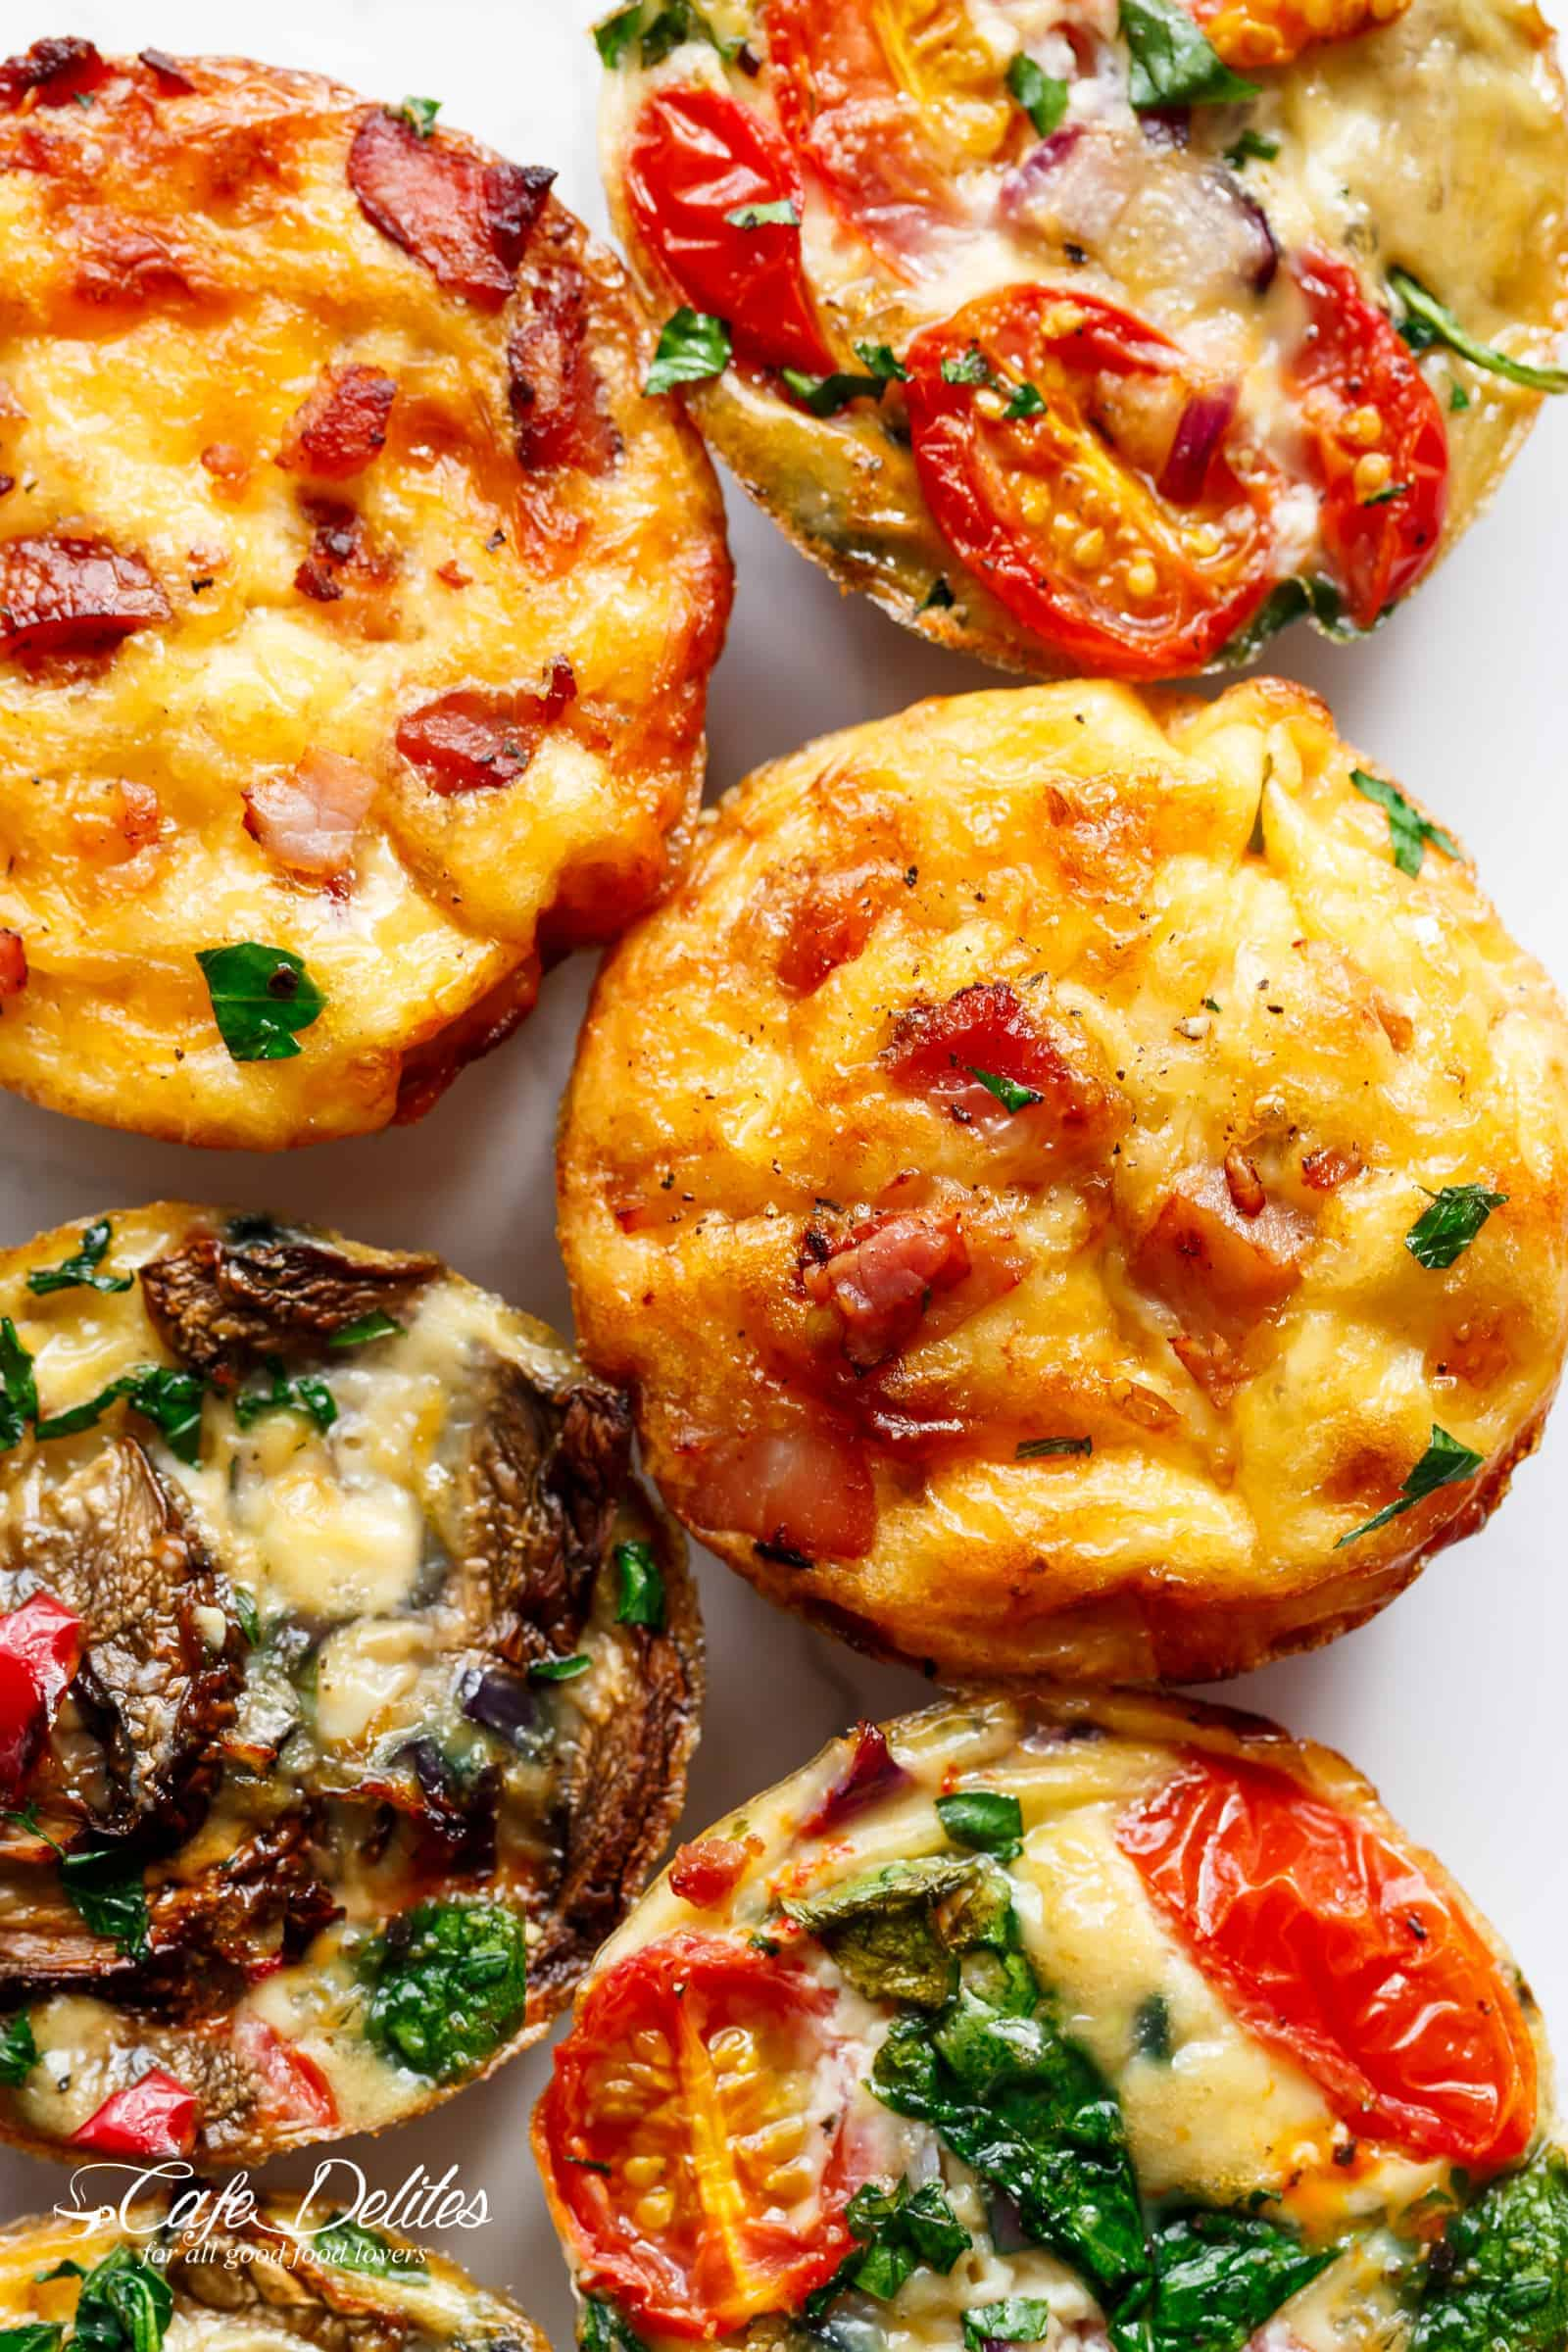 Breakfast Egg Muffins 3 Ways Meal Prep Cafe Delites